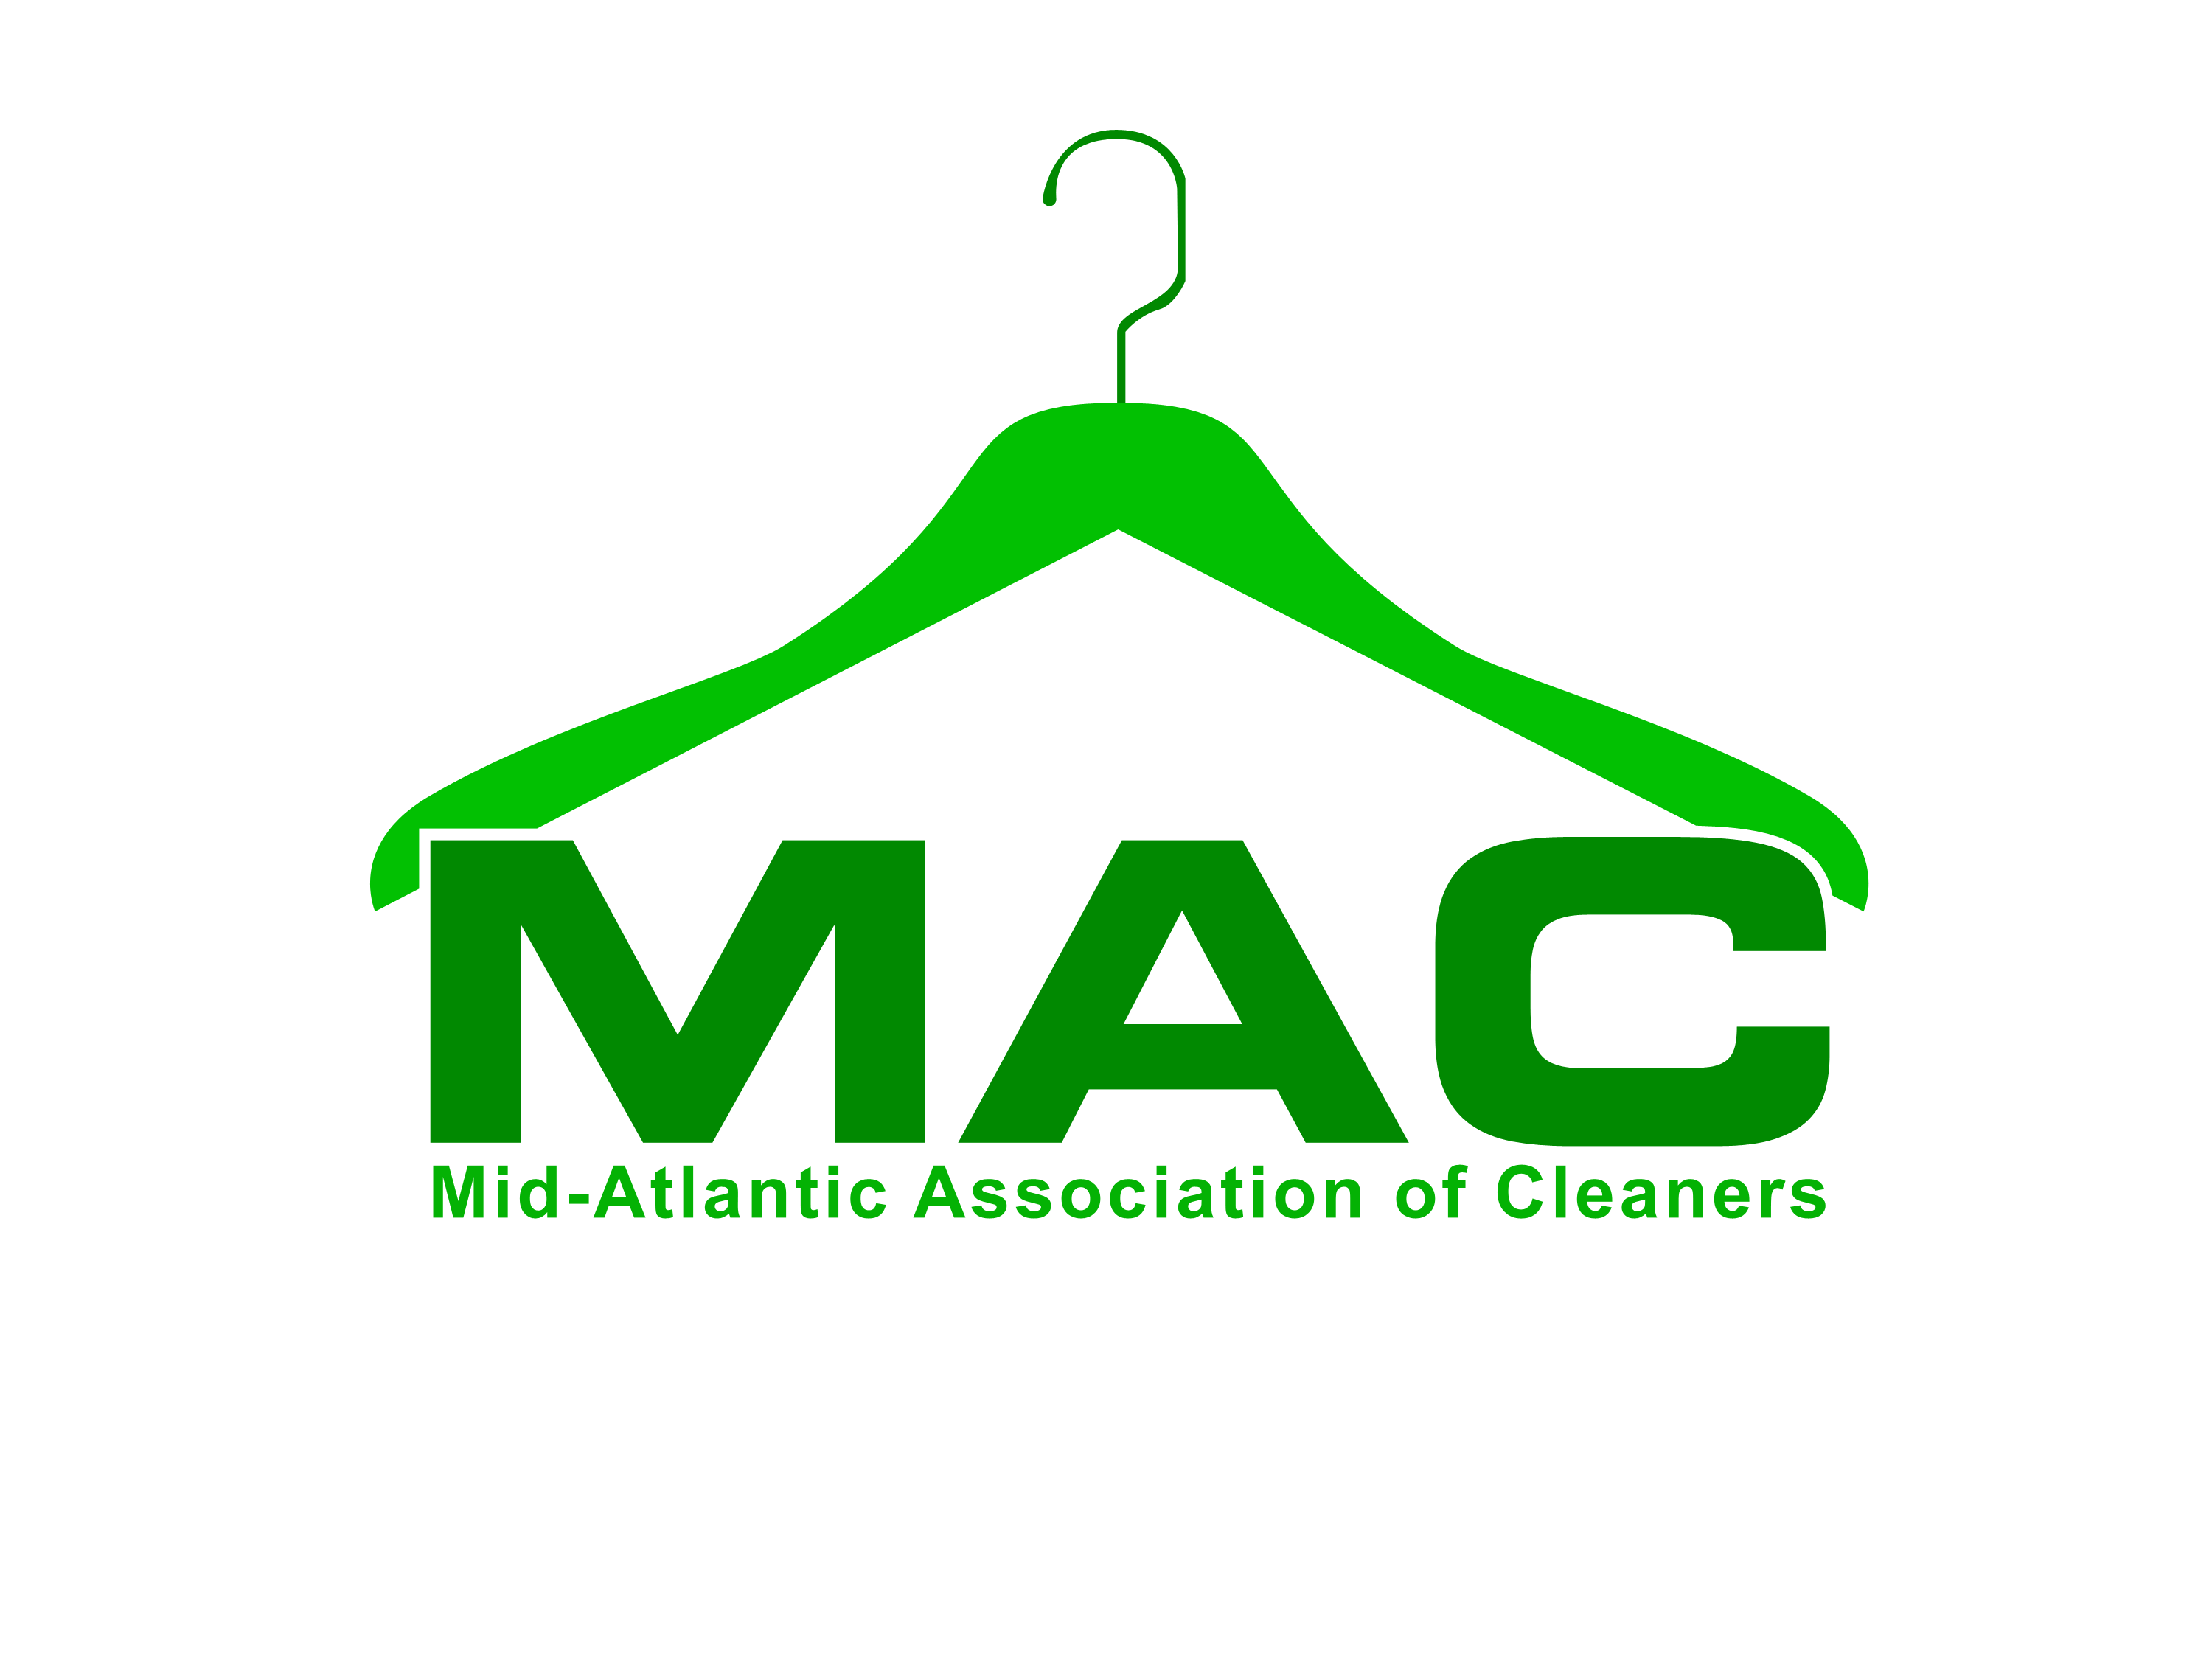 Mid Atlantic Association of Cleaners